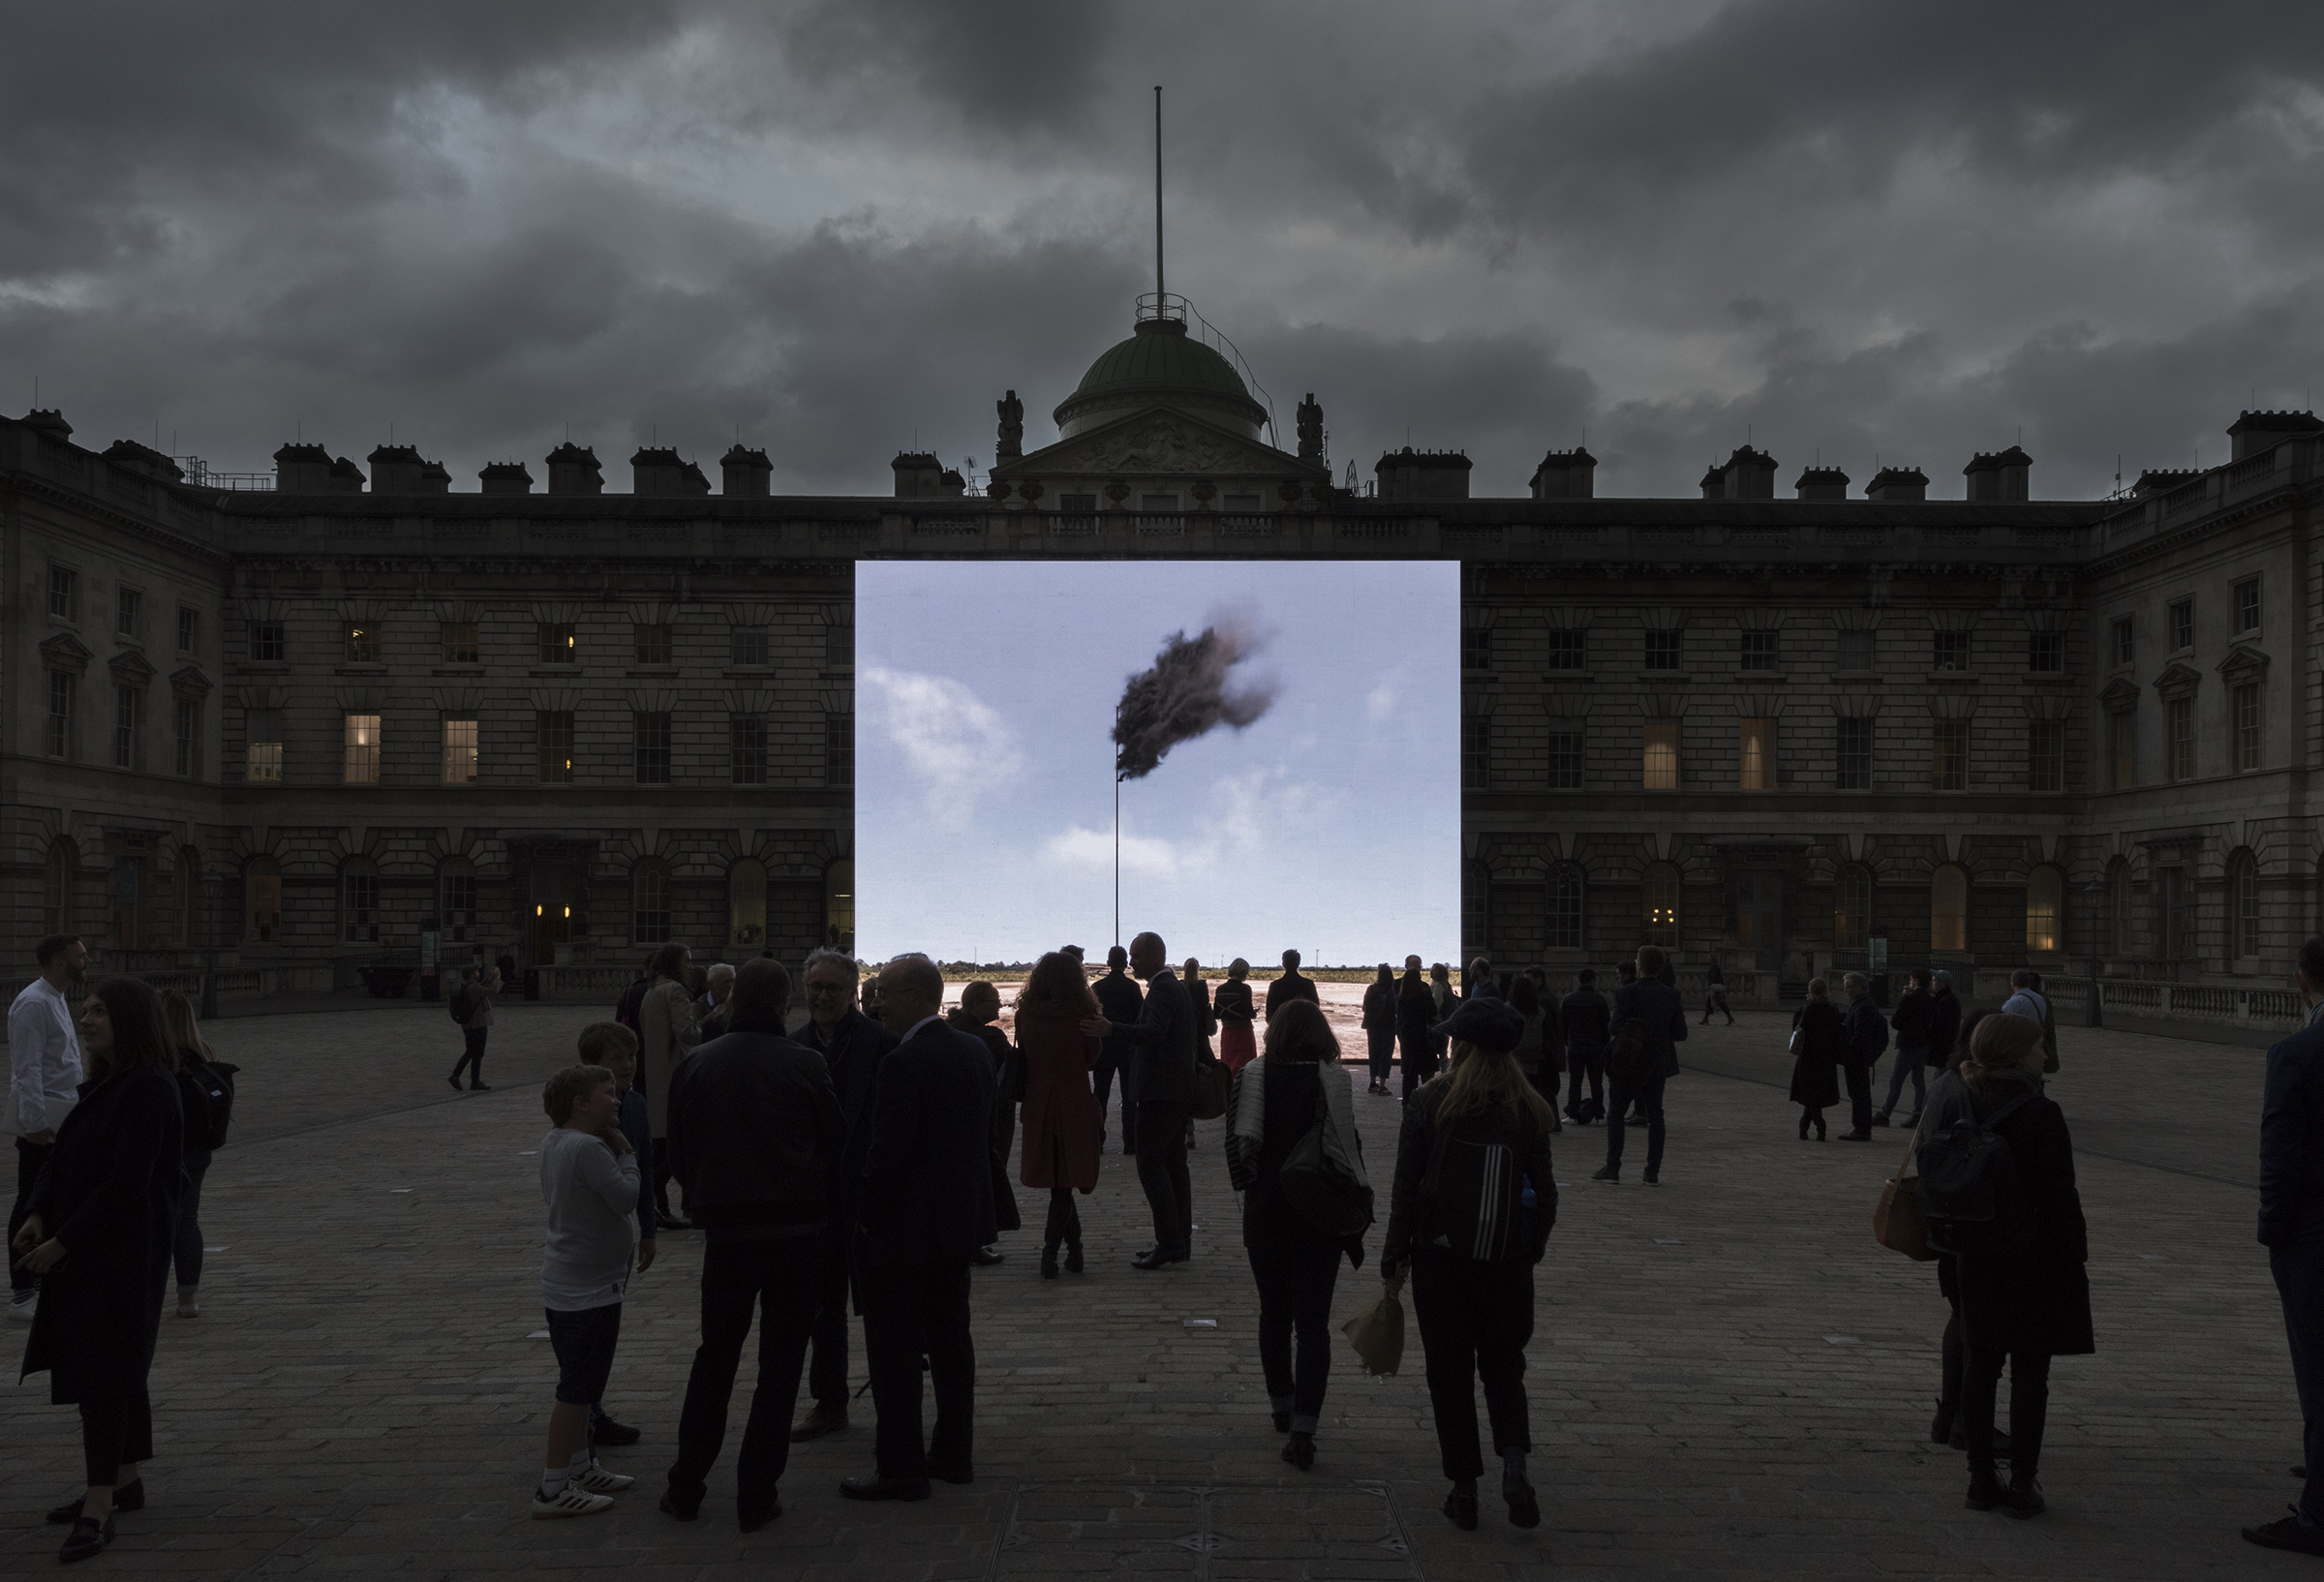 2017 WESTERN FLAG SOMERSET HOUSE LONDON C Damian Griffiths